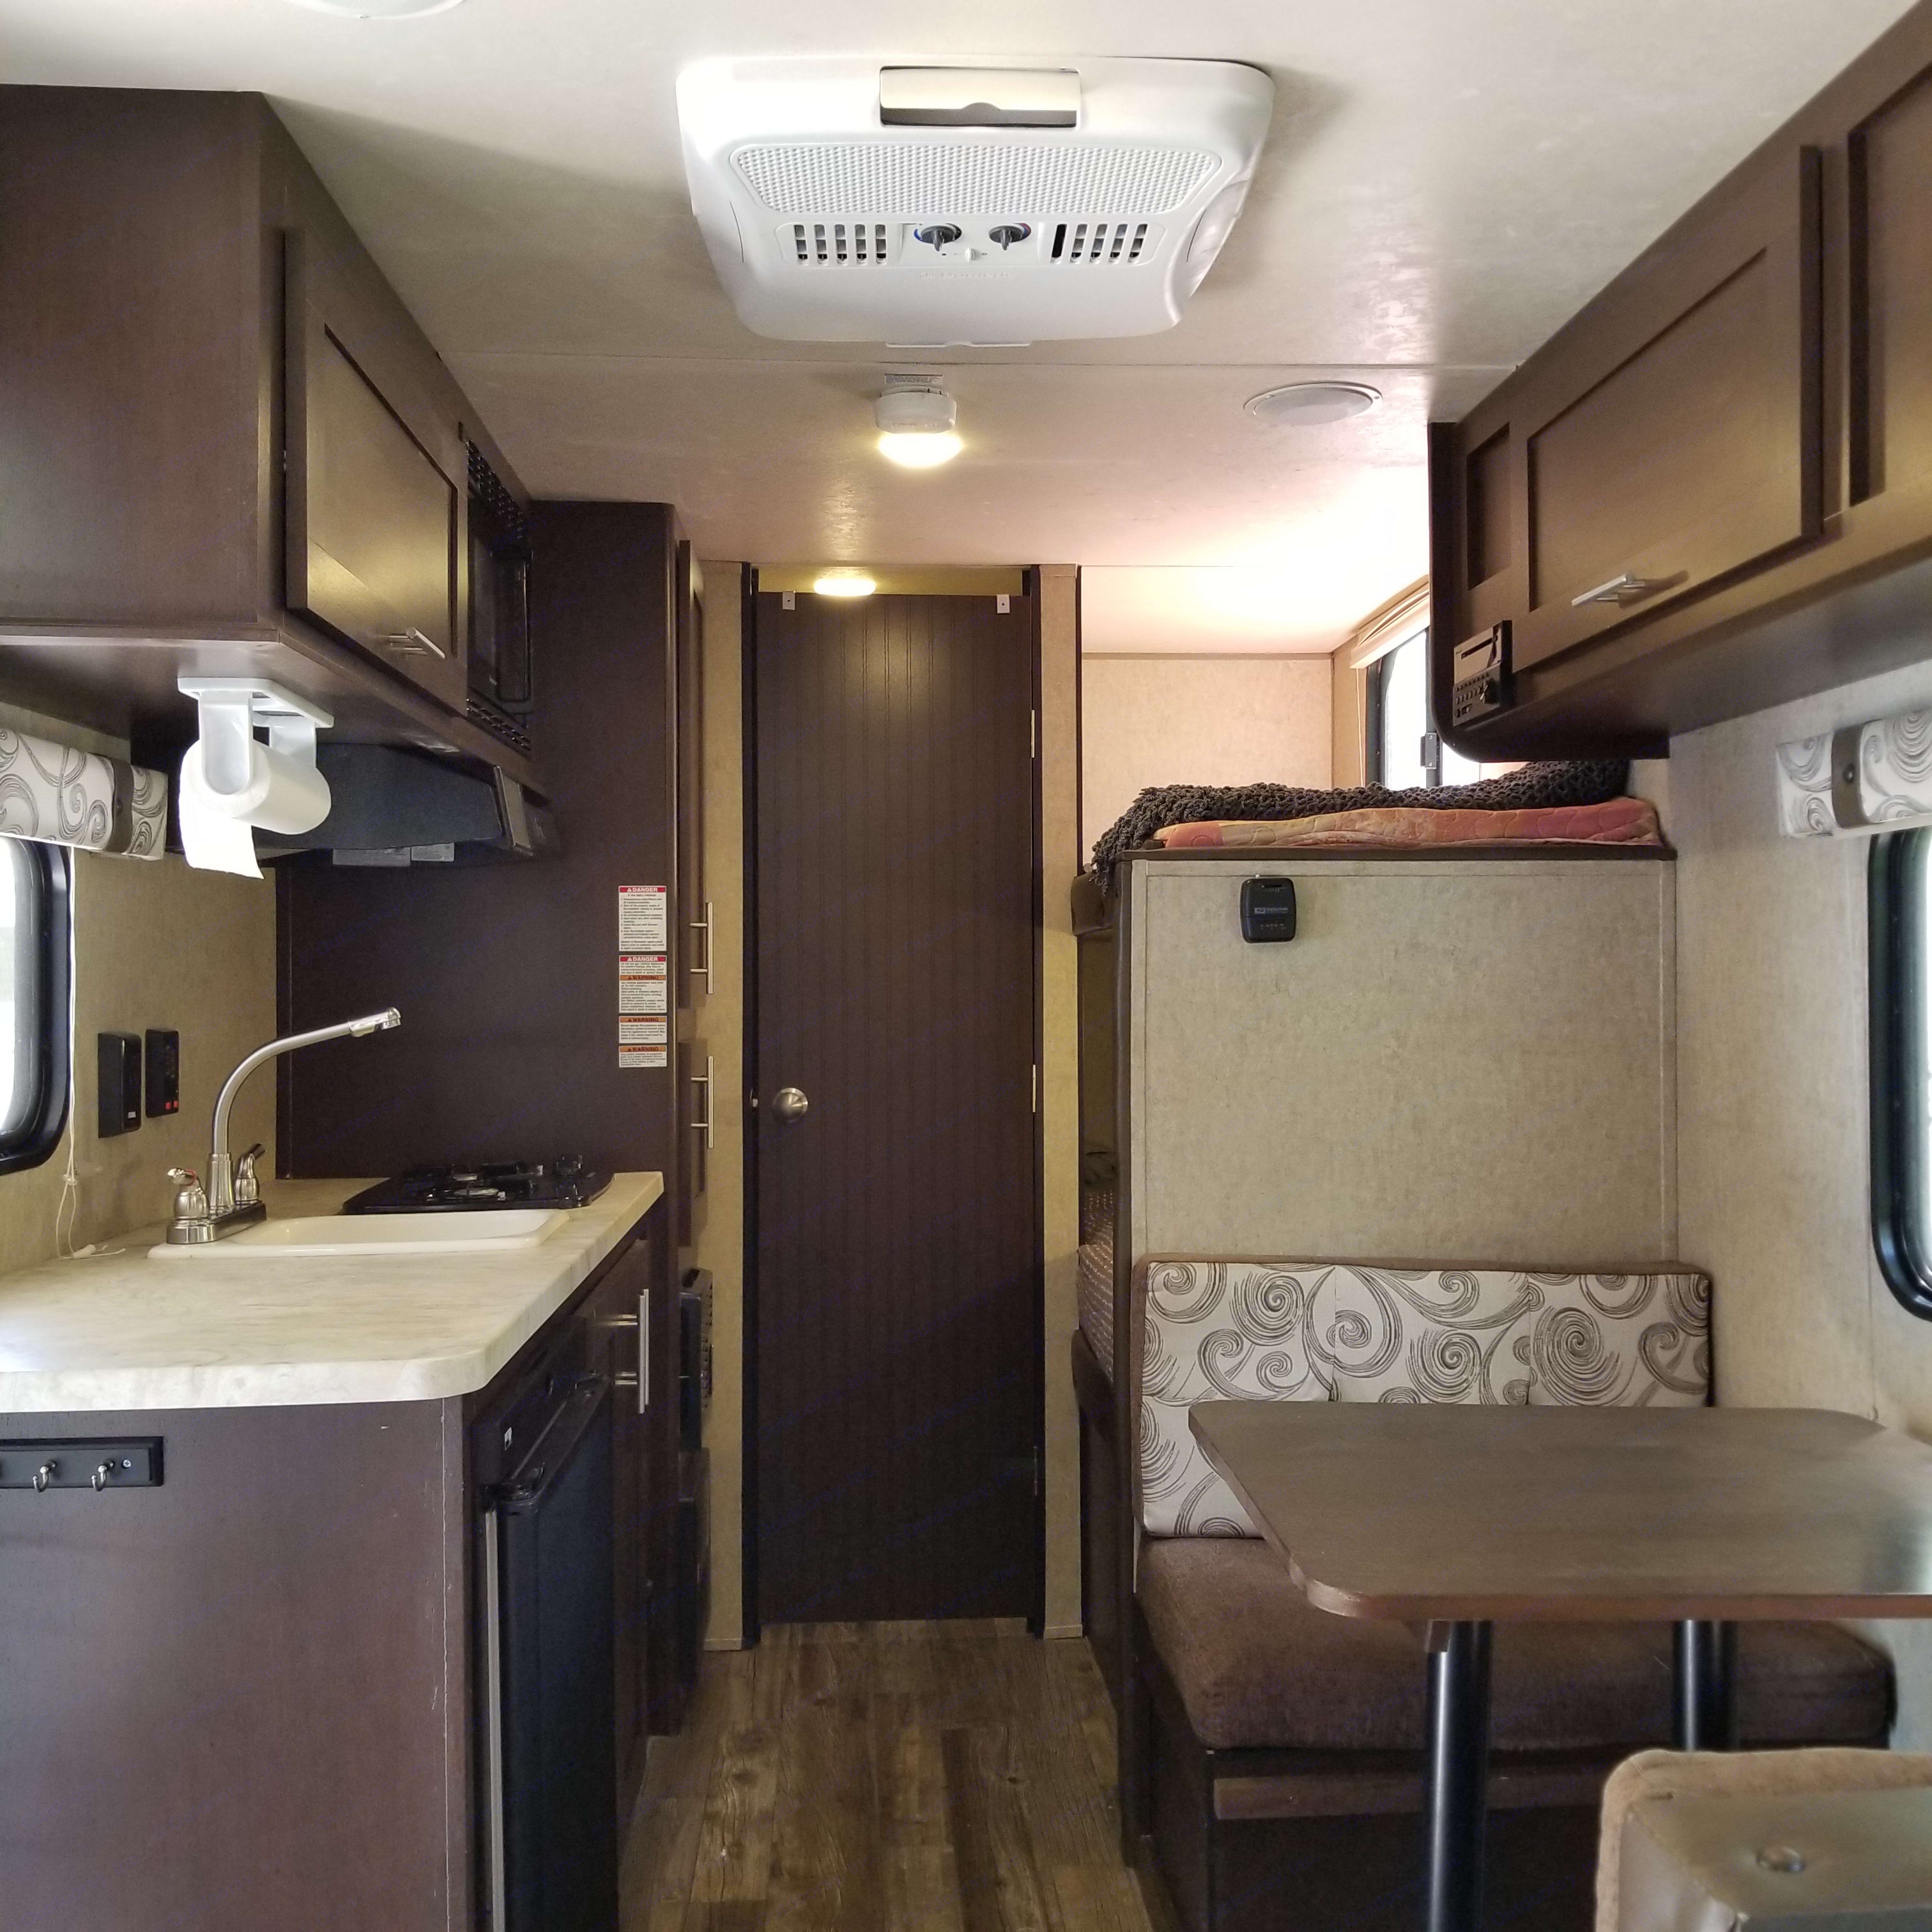 Spacious, yet very cozy layout for this size of trailer. Especially considering how much storage there is. . Forest River Cherokee Wolf Pup 16BHS 2016